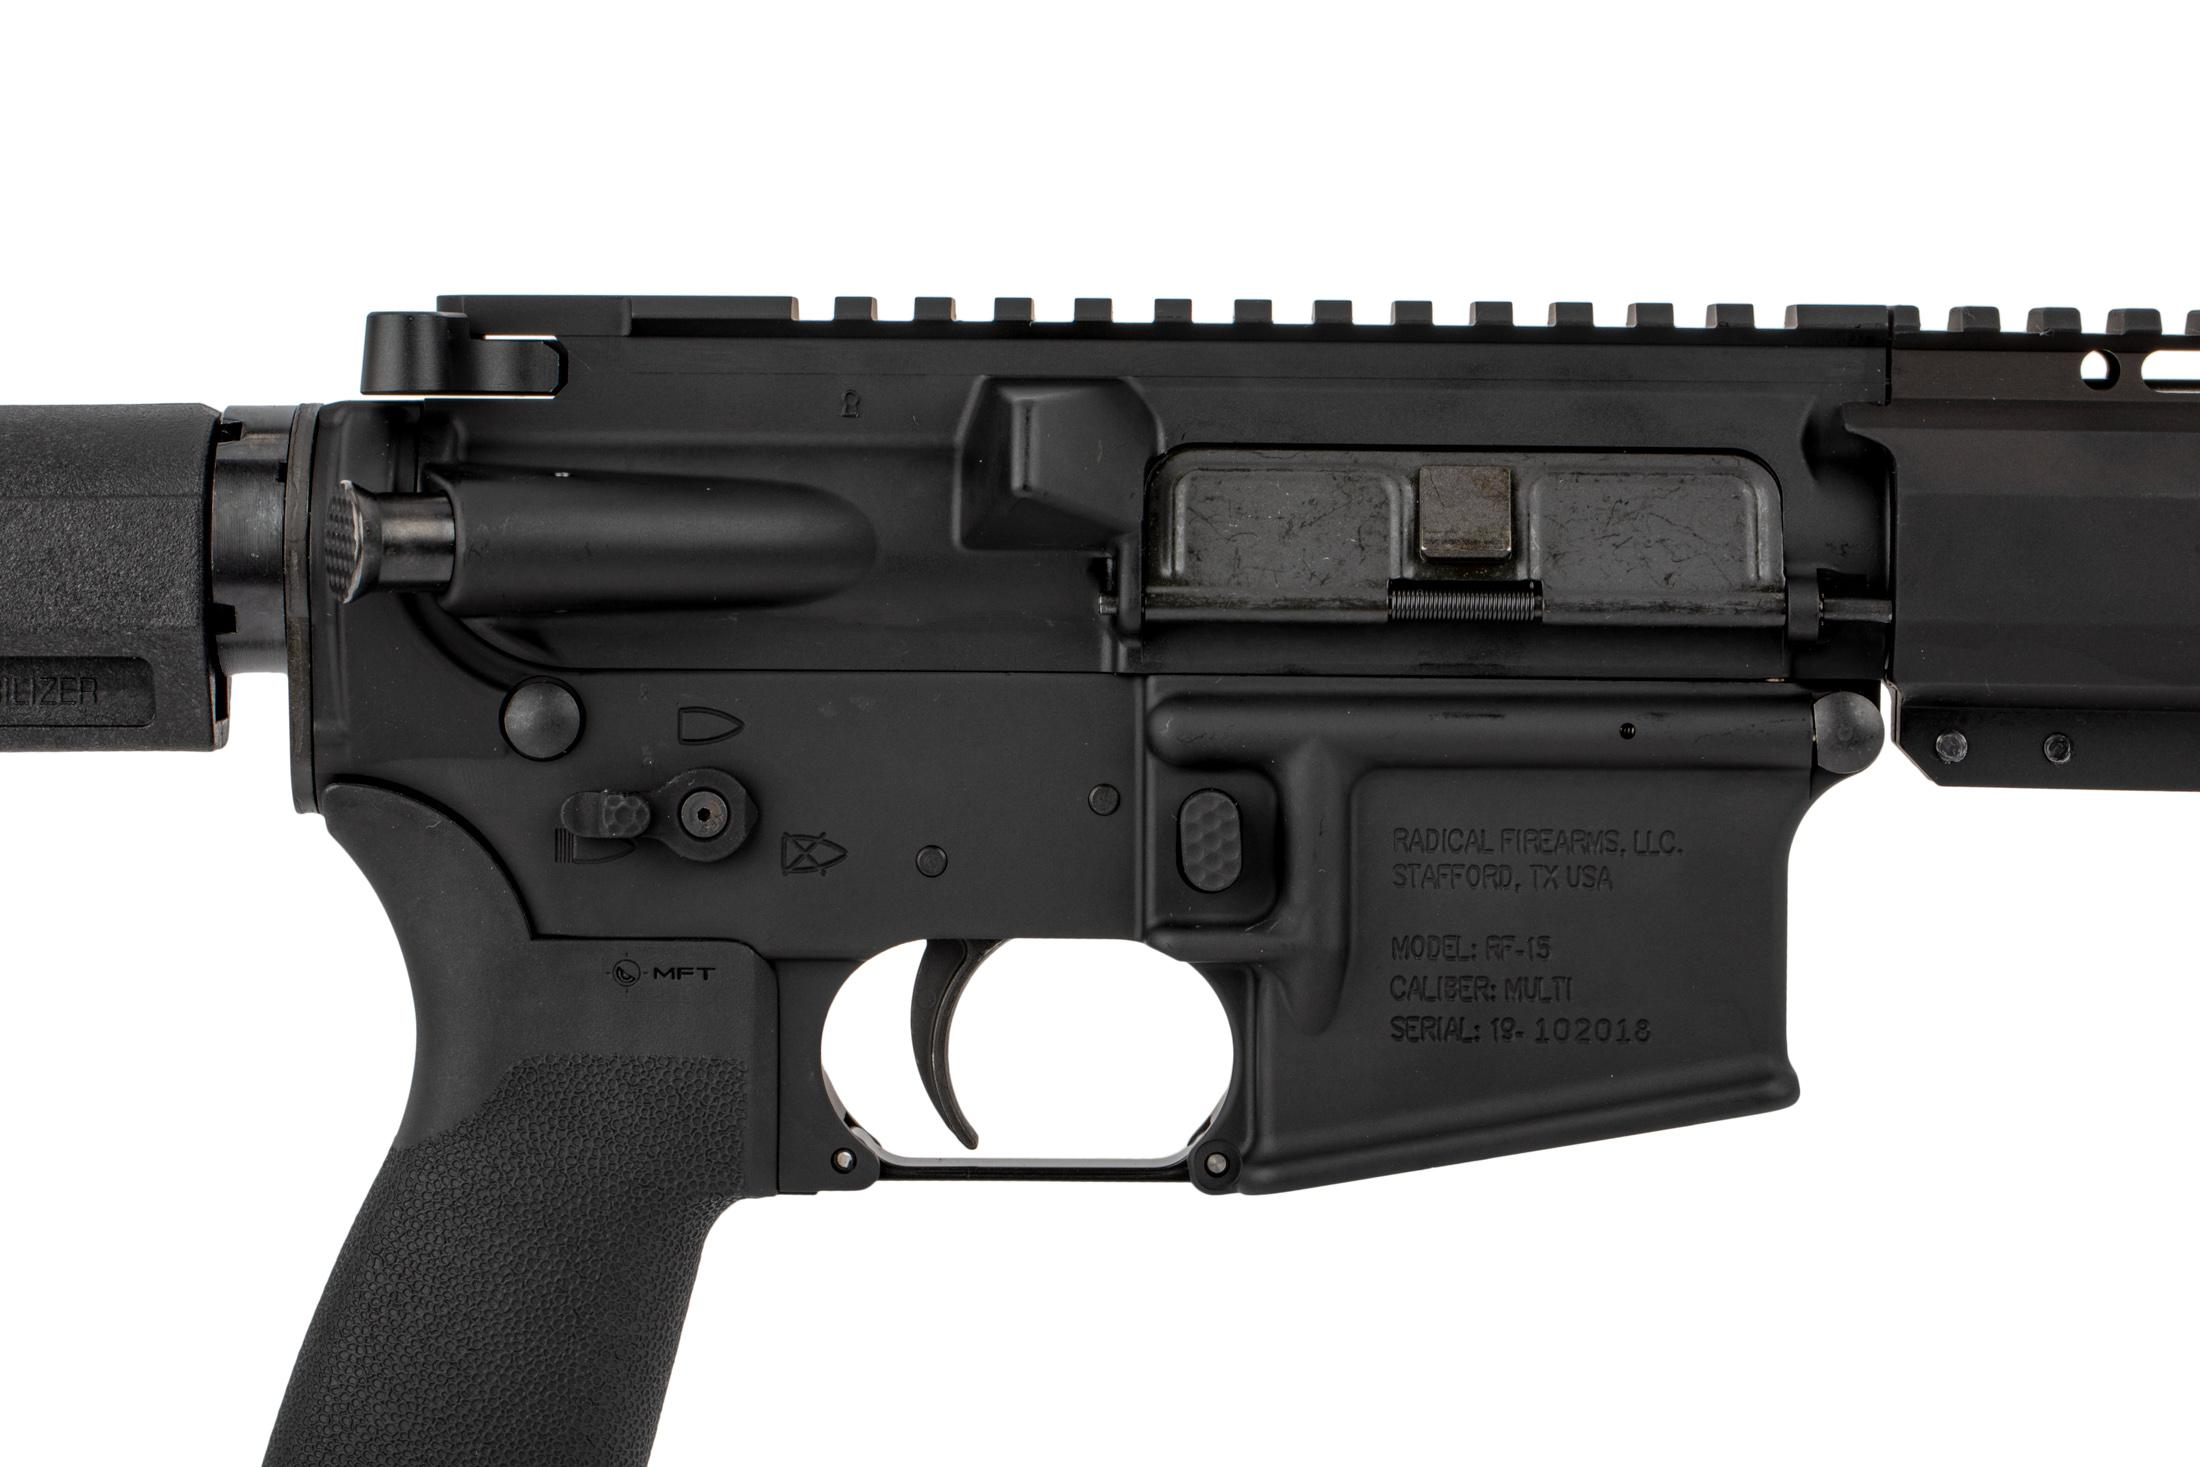 The Radical Firearms 300 Blackout AR 15 Pistol features an ambidextrous safety selector